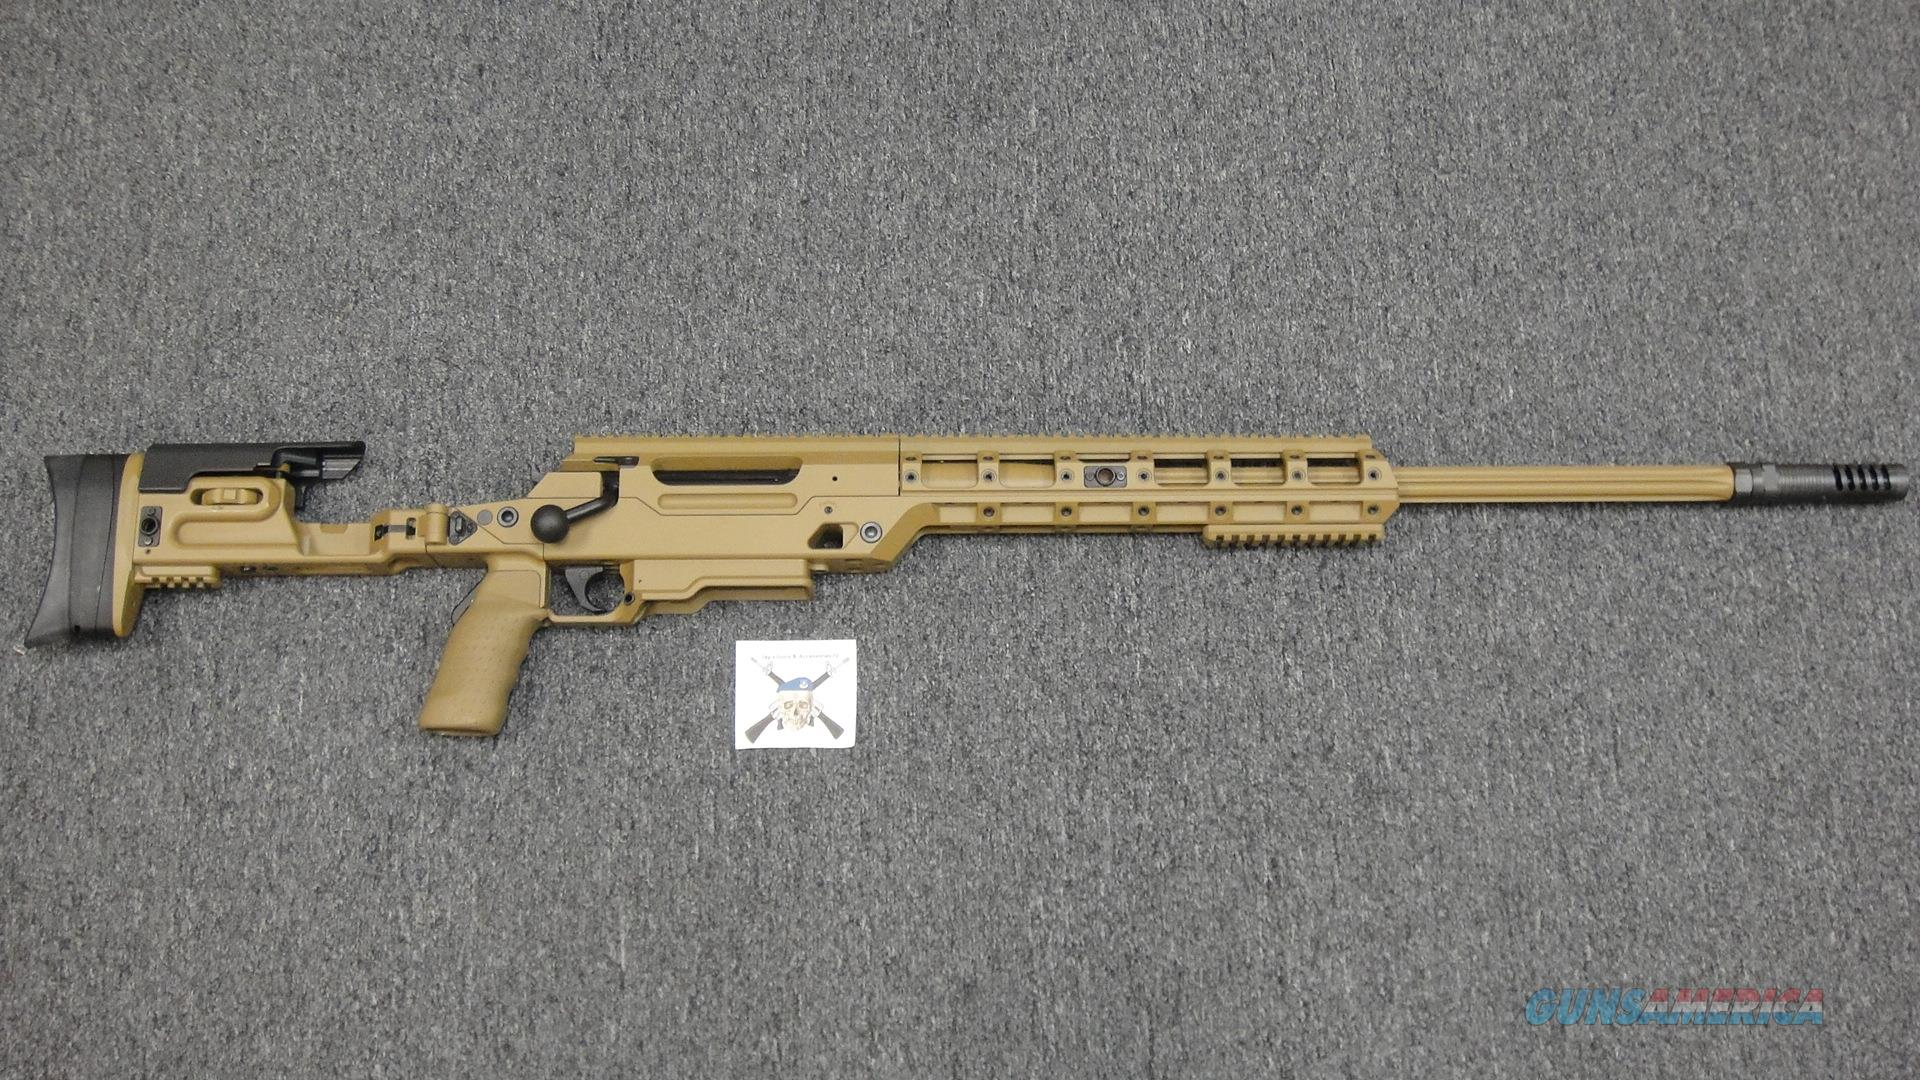 FNH BALLISTA in Flat Dark Earth .338 Lapua Magnum  Guns > Rifles > FNH - Fabrique Nationale (FN) Rifles > Bolt action > Tactical